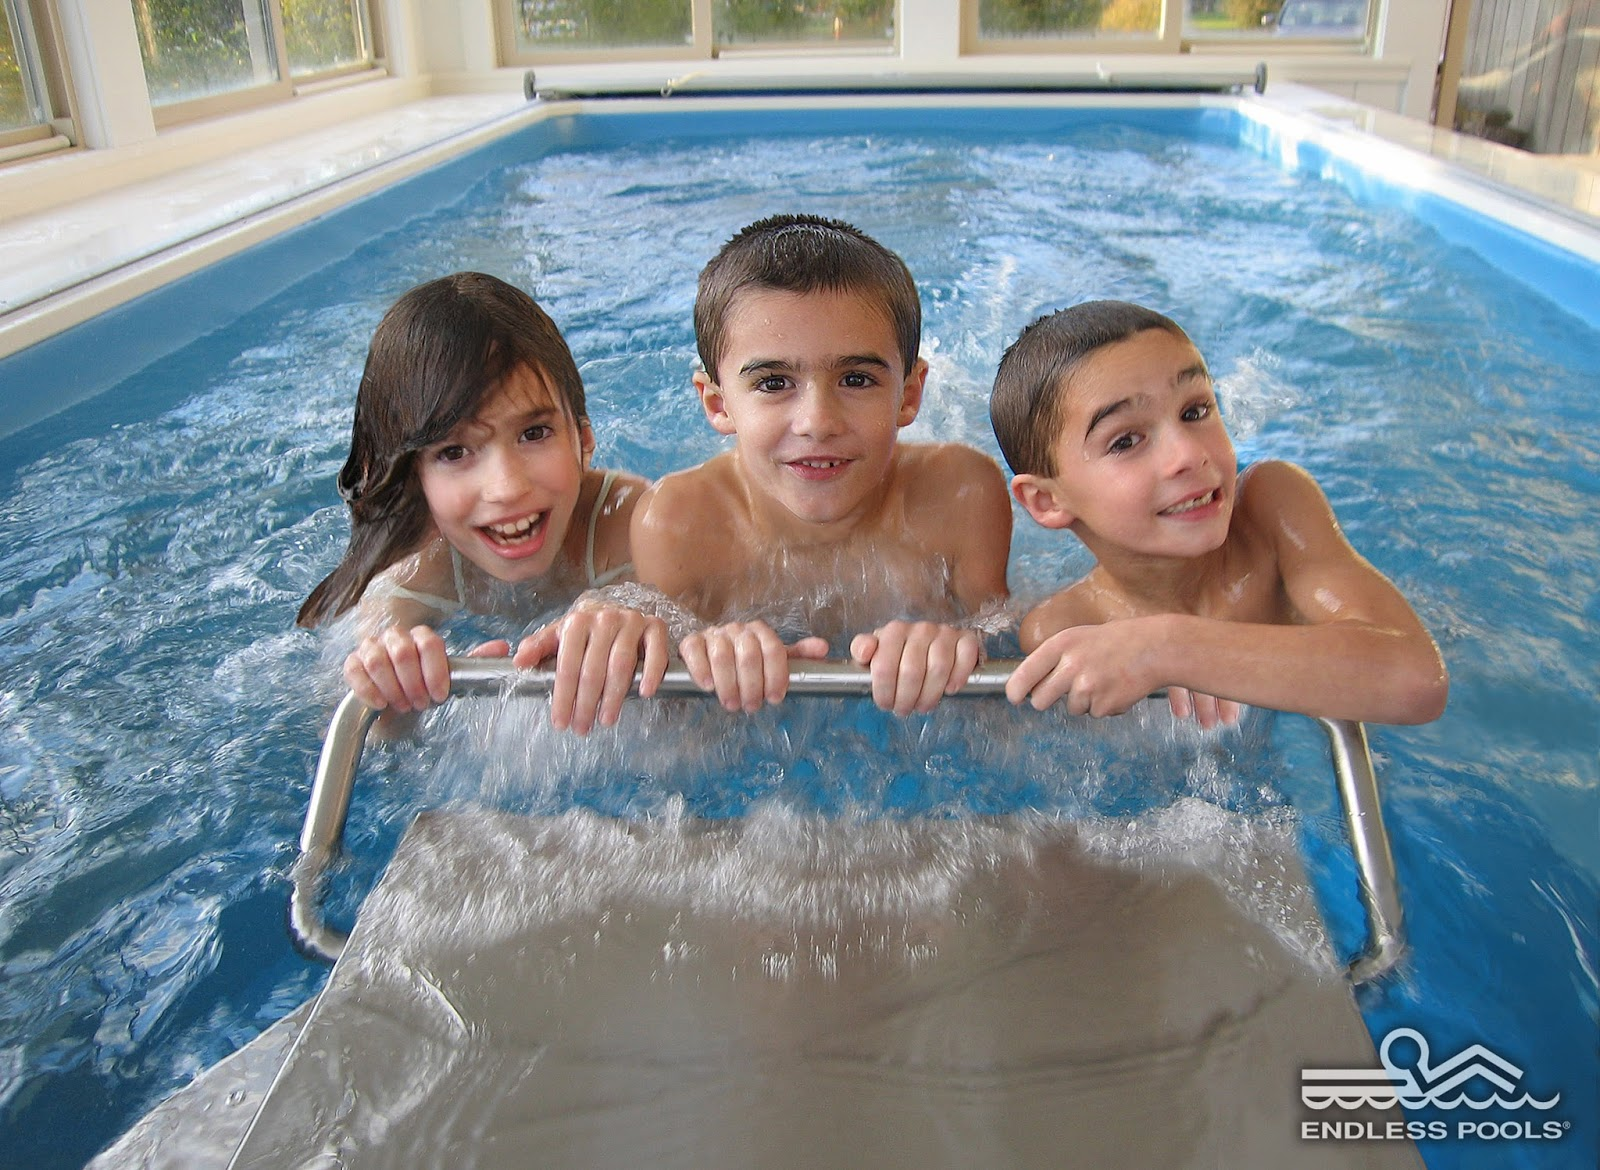 Pool with current to swim against - Three Children Enjoy Their Family S Home Endless Pools Swimming Machine